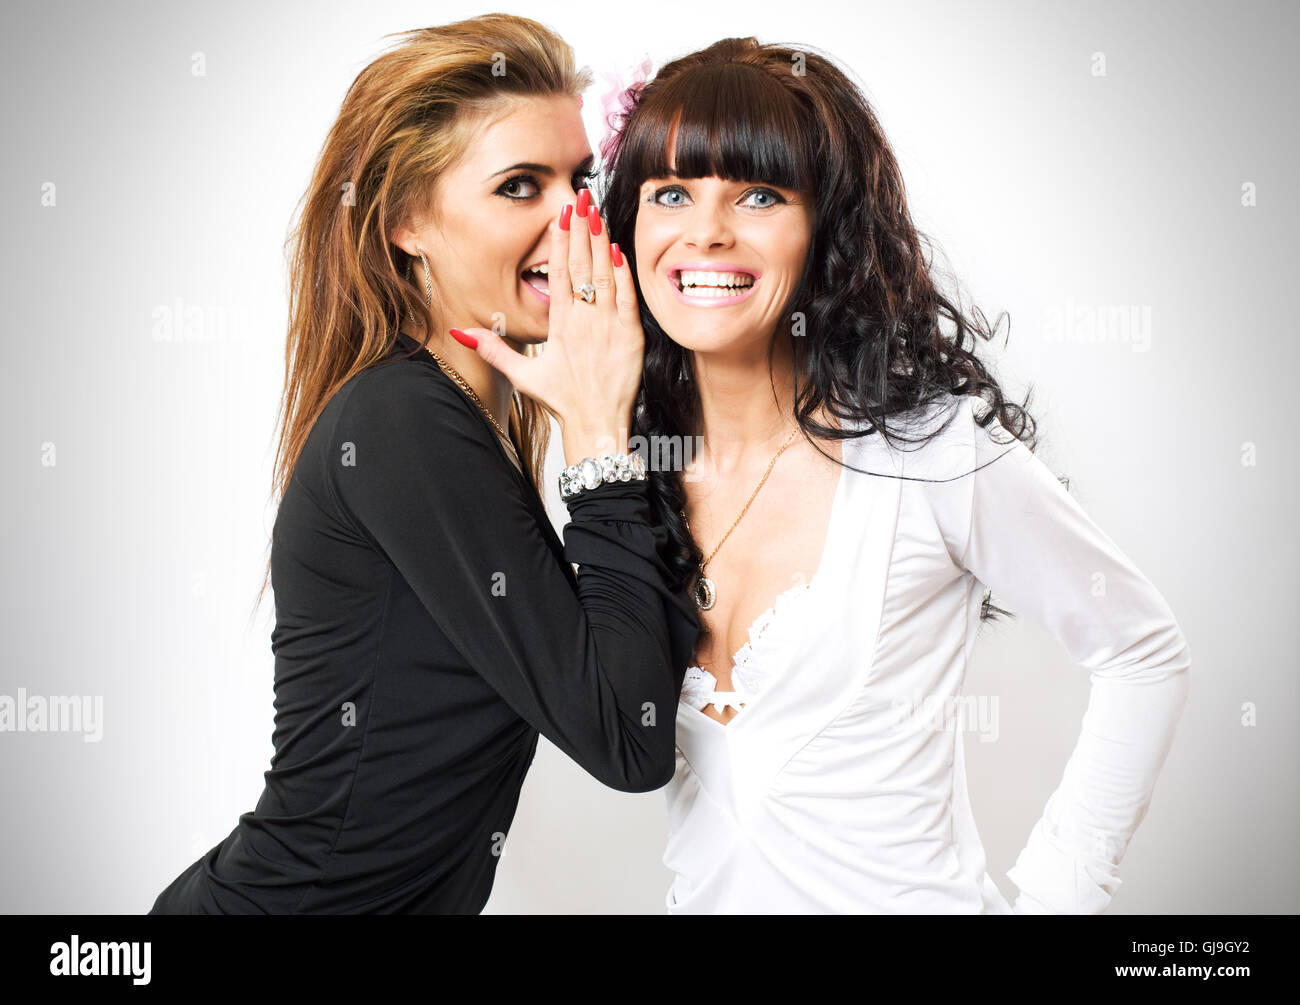 girls have secrets - Stock Image